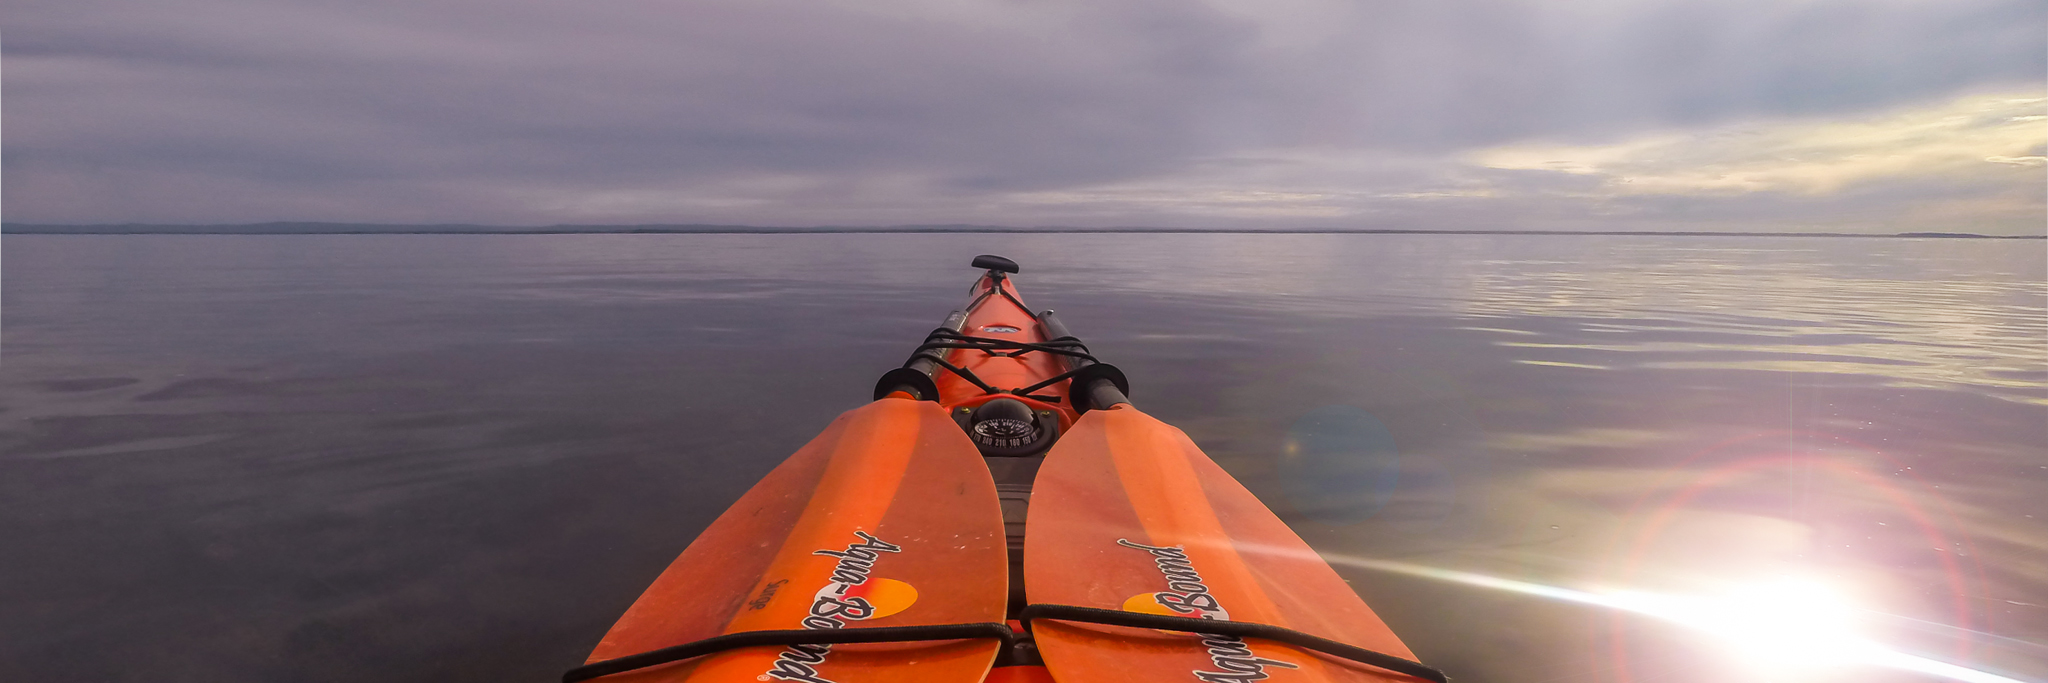 Chip MacAlpine, Erie Canal, Kayaking, Sally Supernova, Wilderness Systems, Oneida Lake